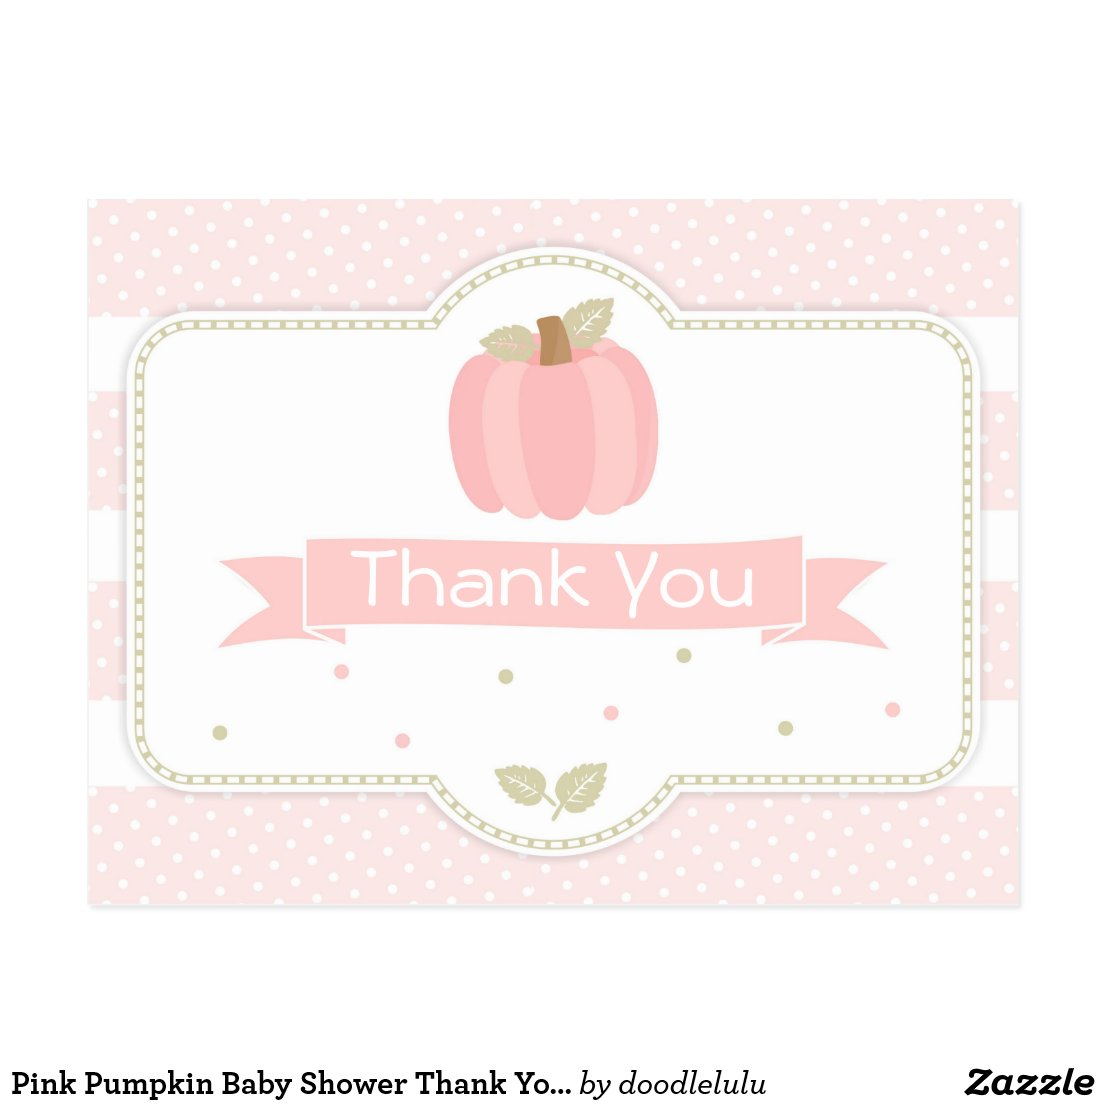 Pink Pumpkin Baby Shower Thank You Postcard